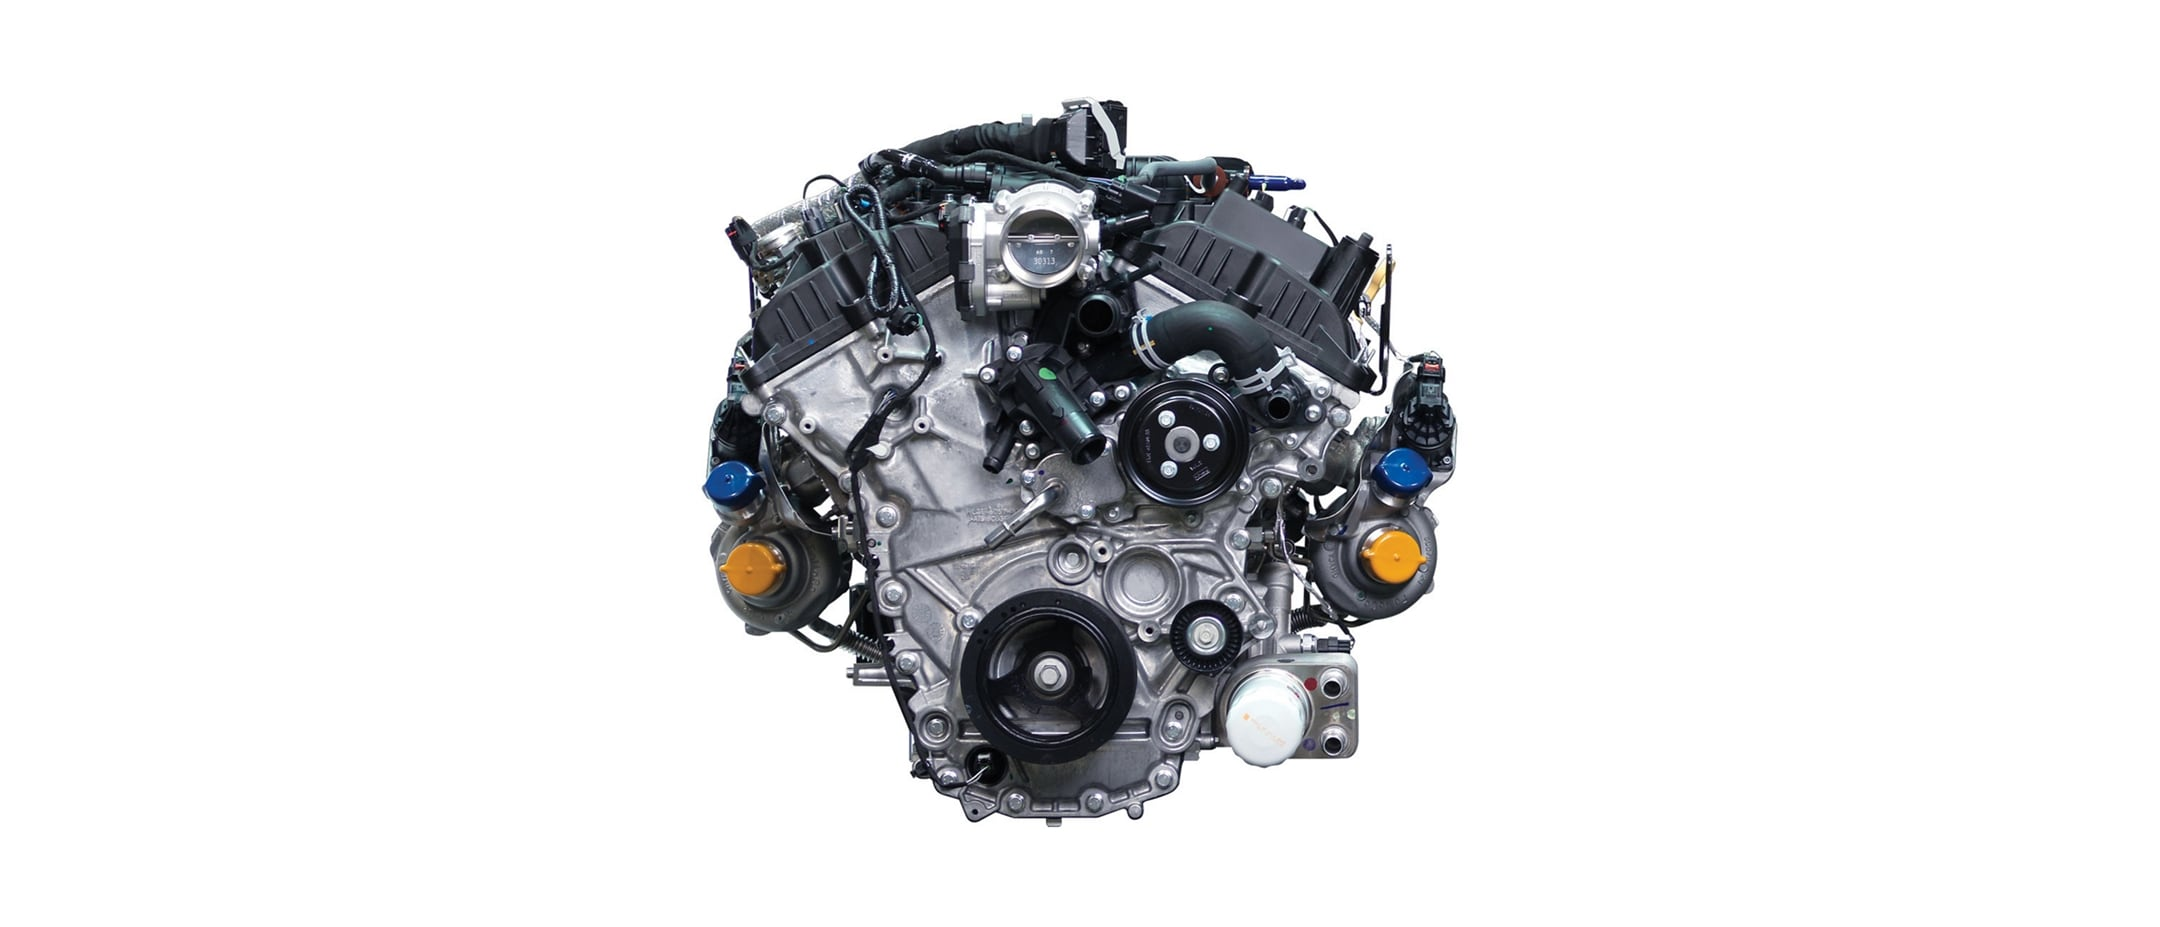 3.5L EcoBoost V6 F150 Engine